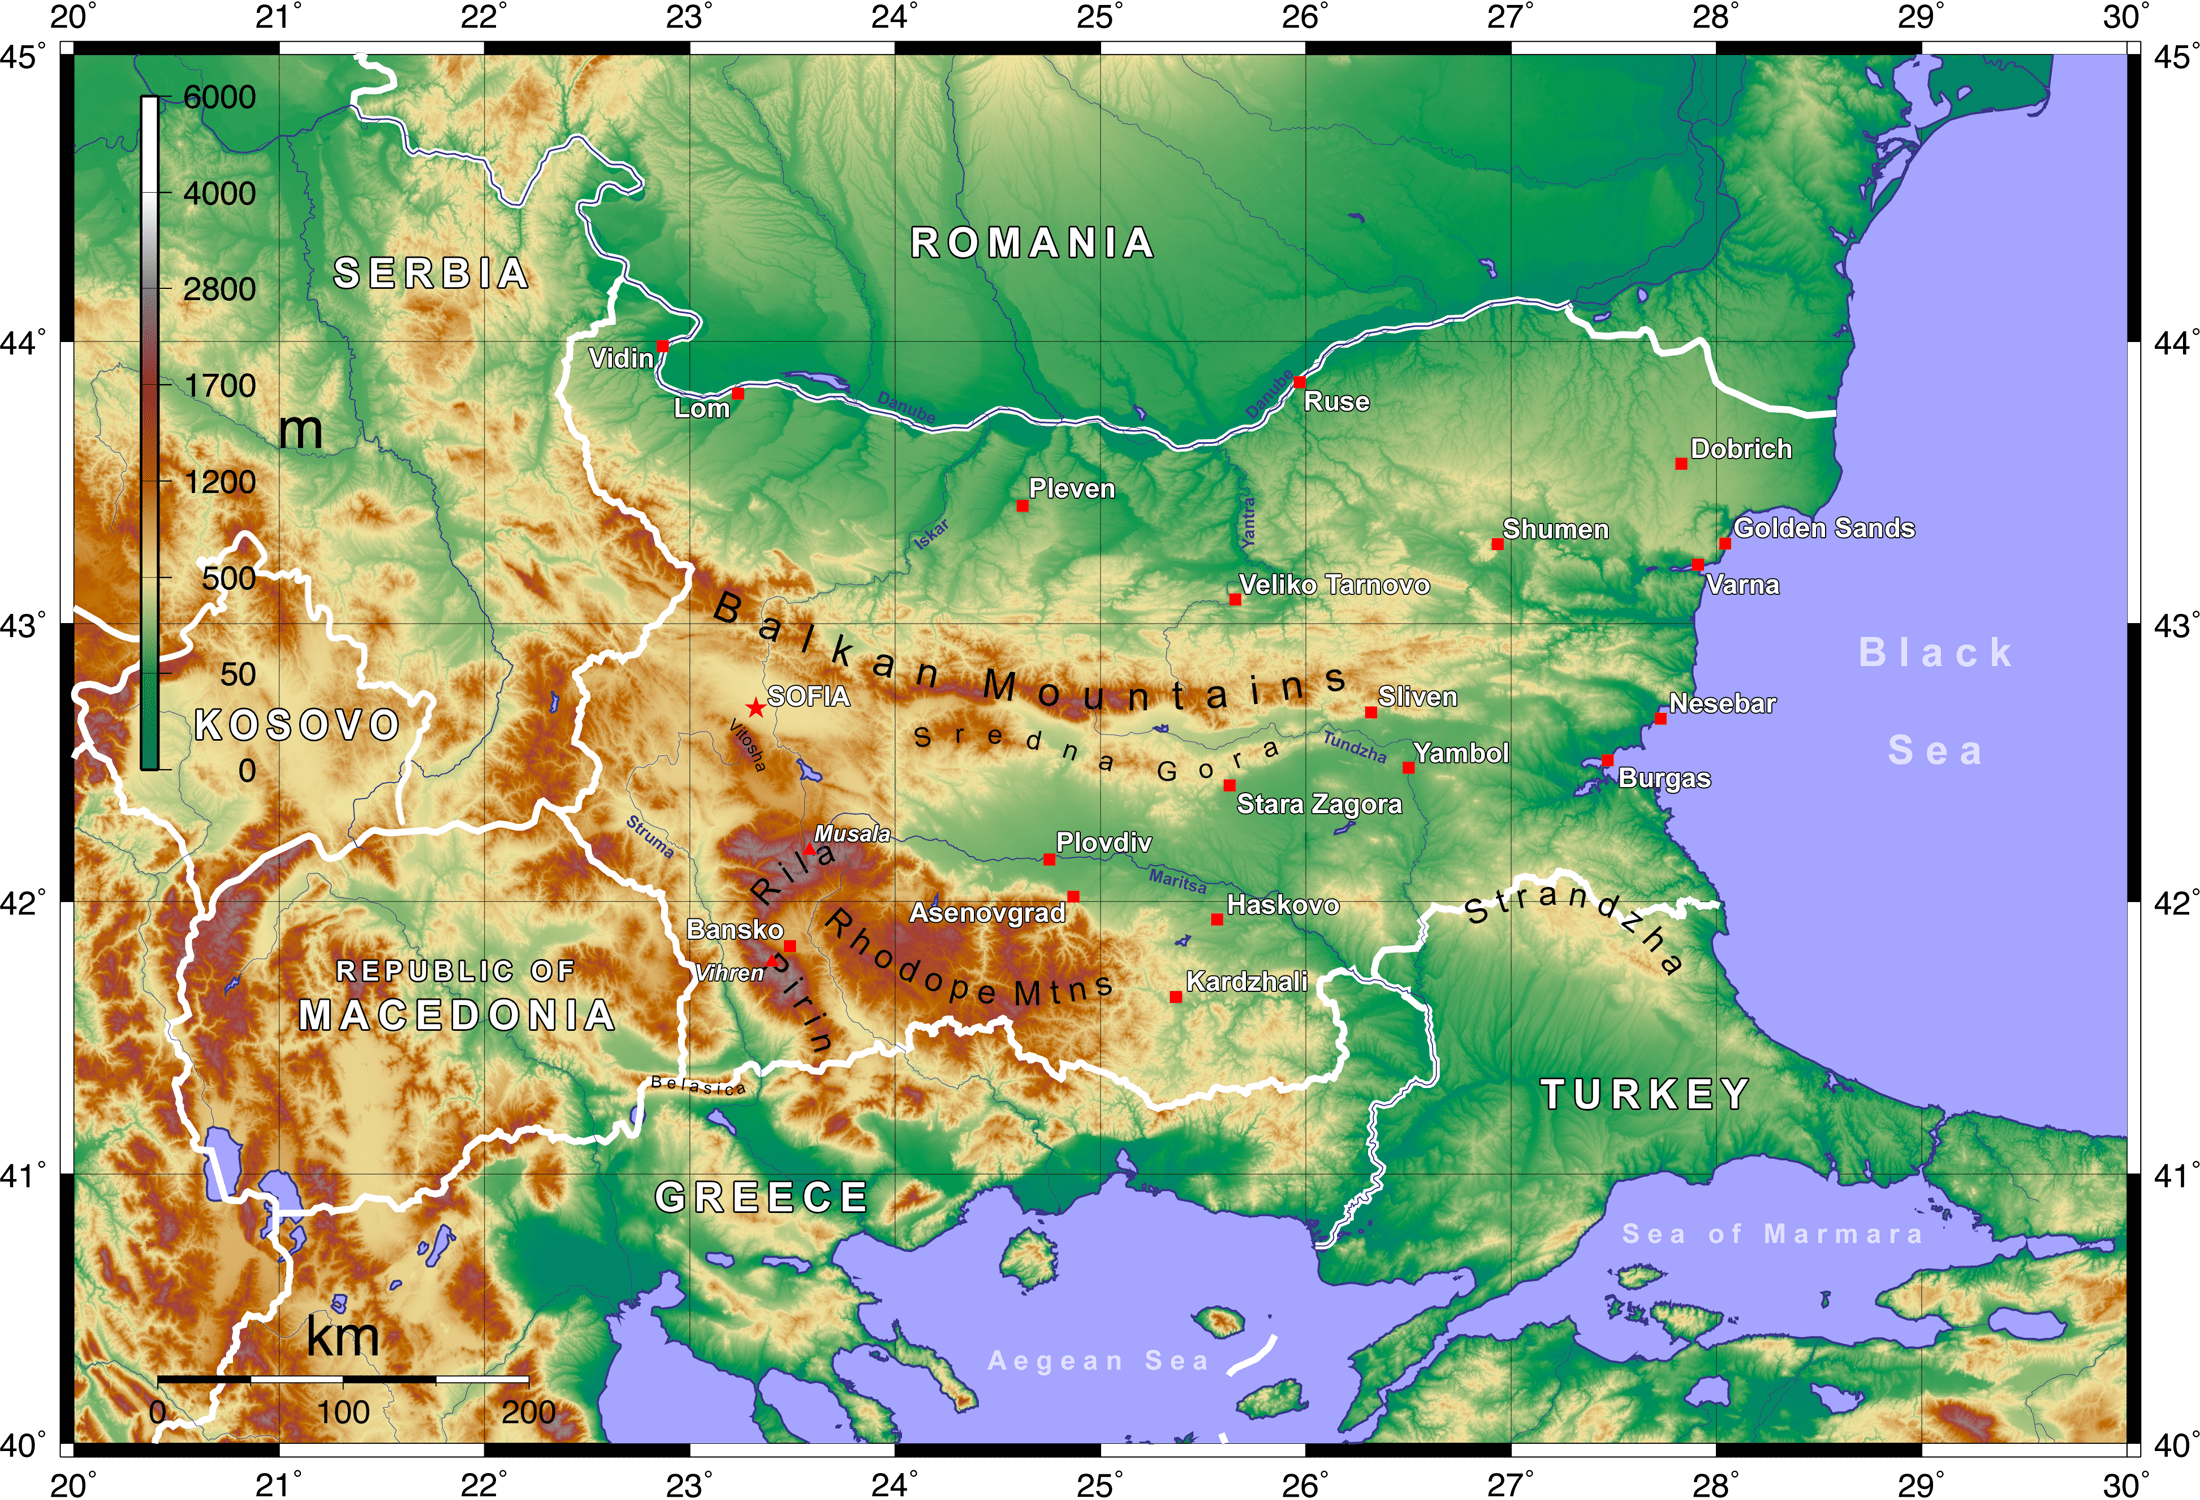 https://i0.wp.com/upload.wikimedia.org/wikipedia/commons/f/fd/Topographic_Map_of_Bulgaria_English.png